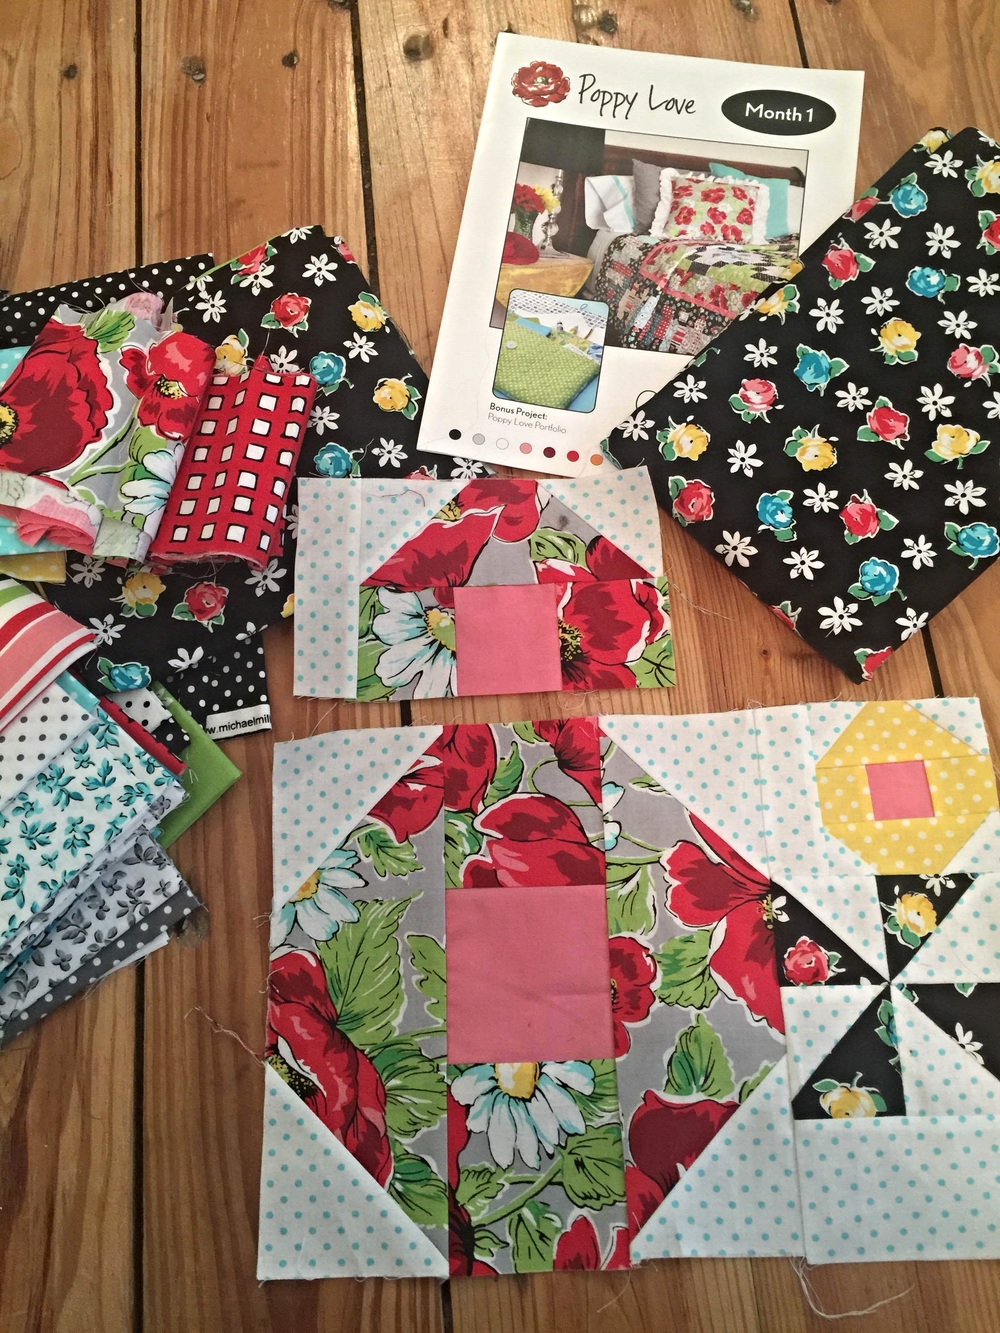 The Monthly (ha!) Quilt-a-long